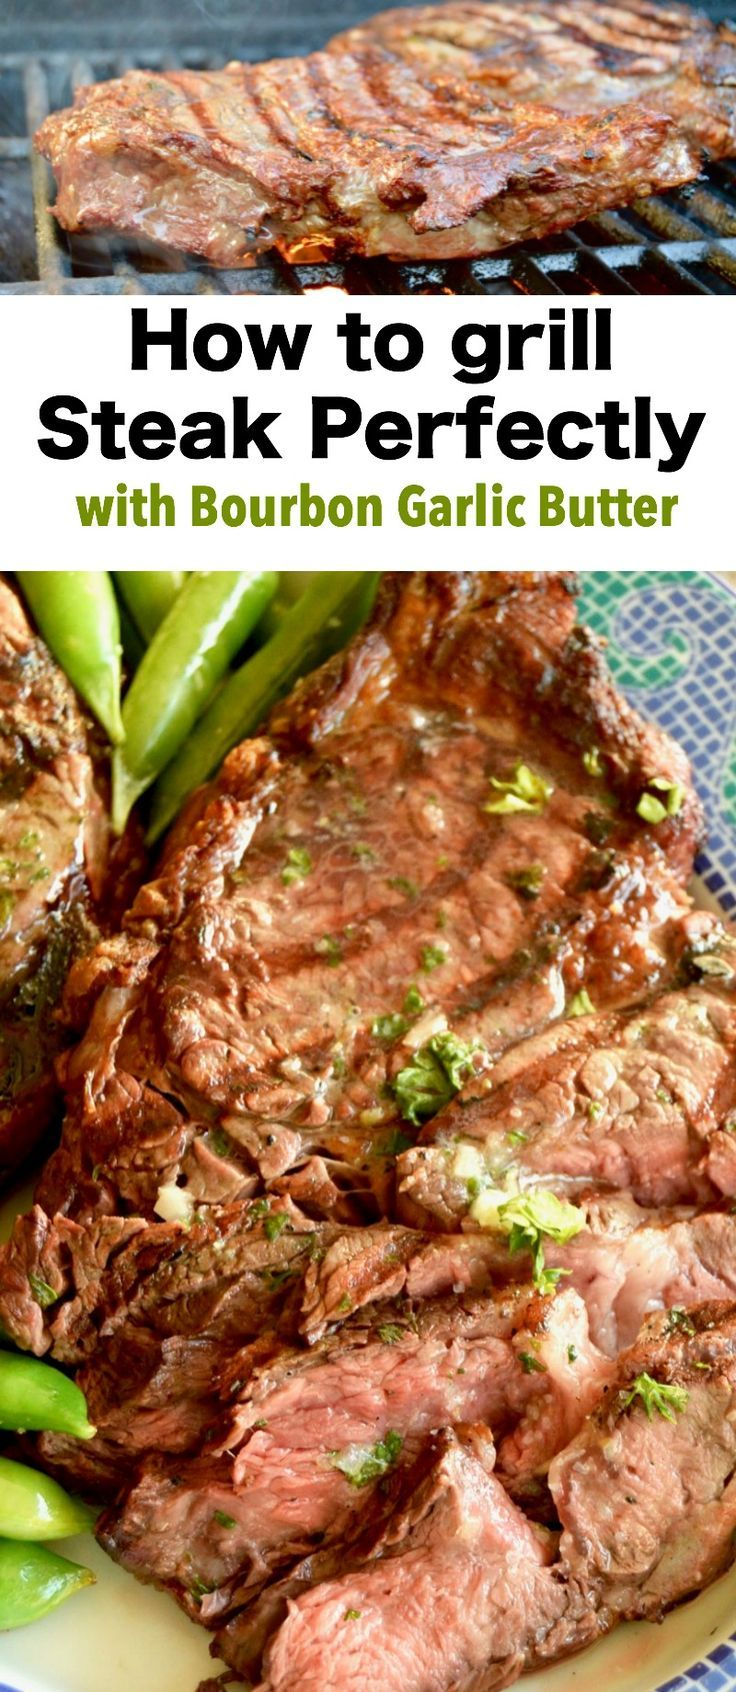 Grilled Steak with Bourbon Garlic Butter-- How to grill the perfect steak: Melted Bourbon Garlic butter blankets seared on the outside, juicy, tender on the inside steaks for an easy BBQ meal for entertaining. via @westviamidwest